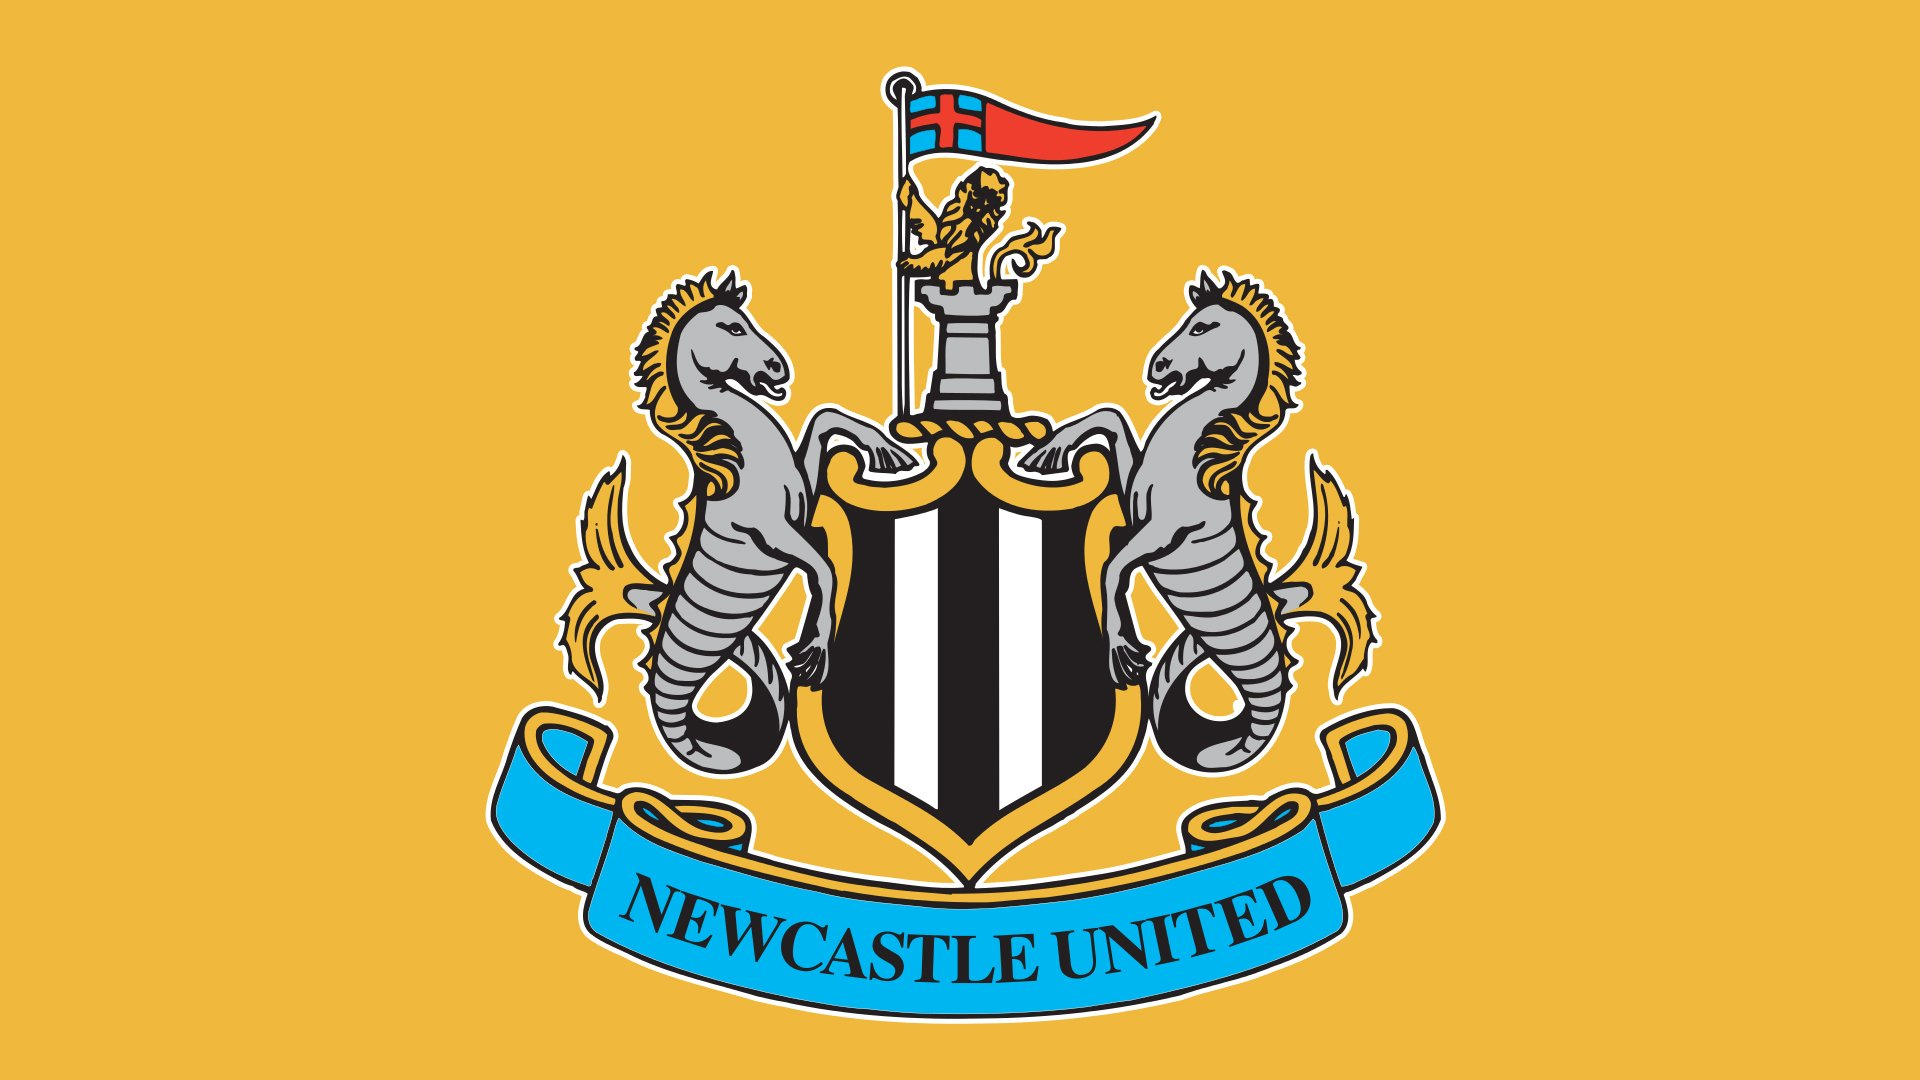 Newcastle United: Newcastle United Logo, Newcastle United Symbol, Meaning